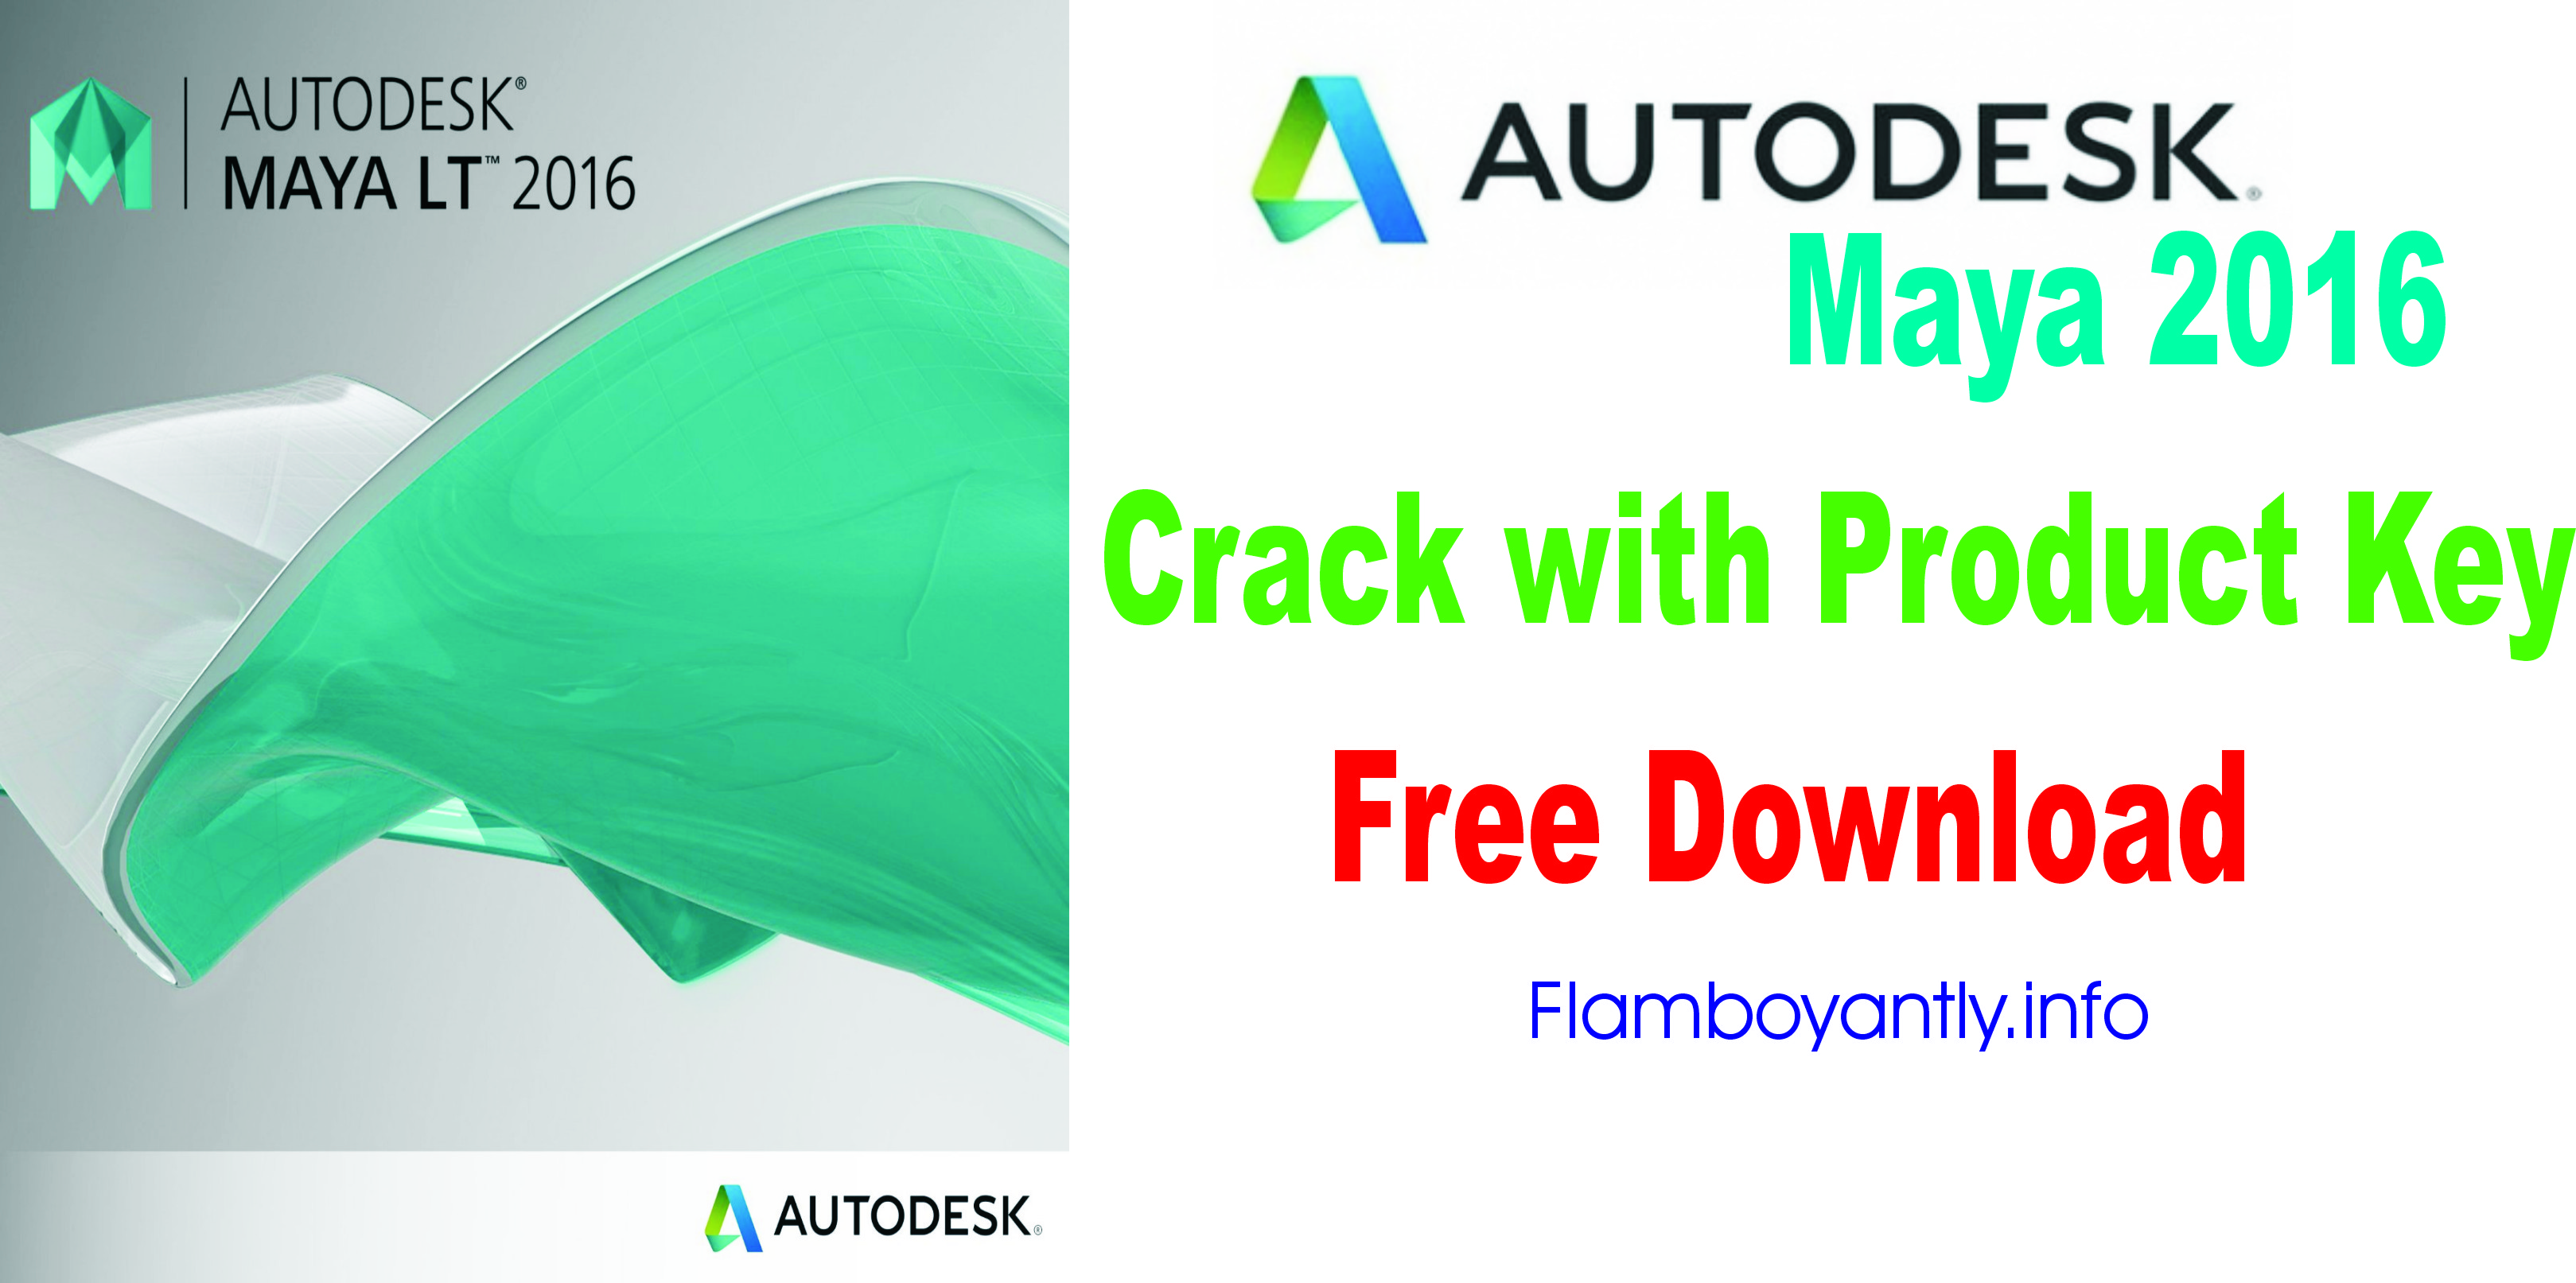 Autodesk Maya 2016 Crack with Product Key Free Download